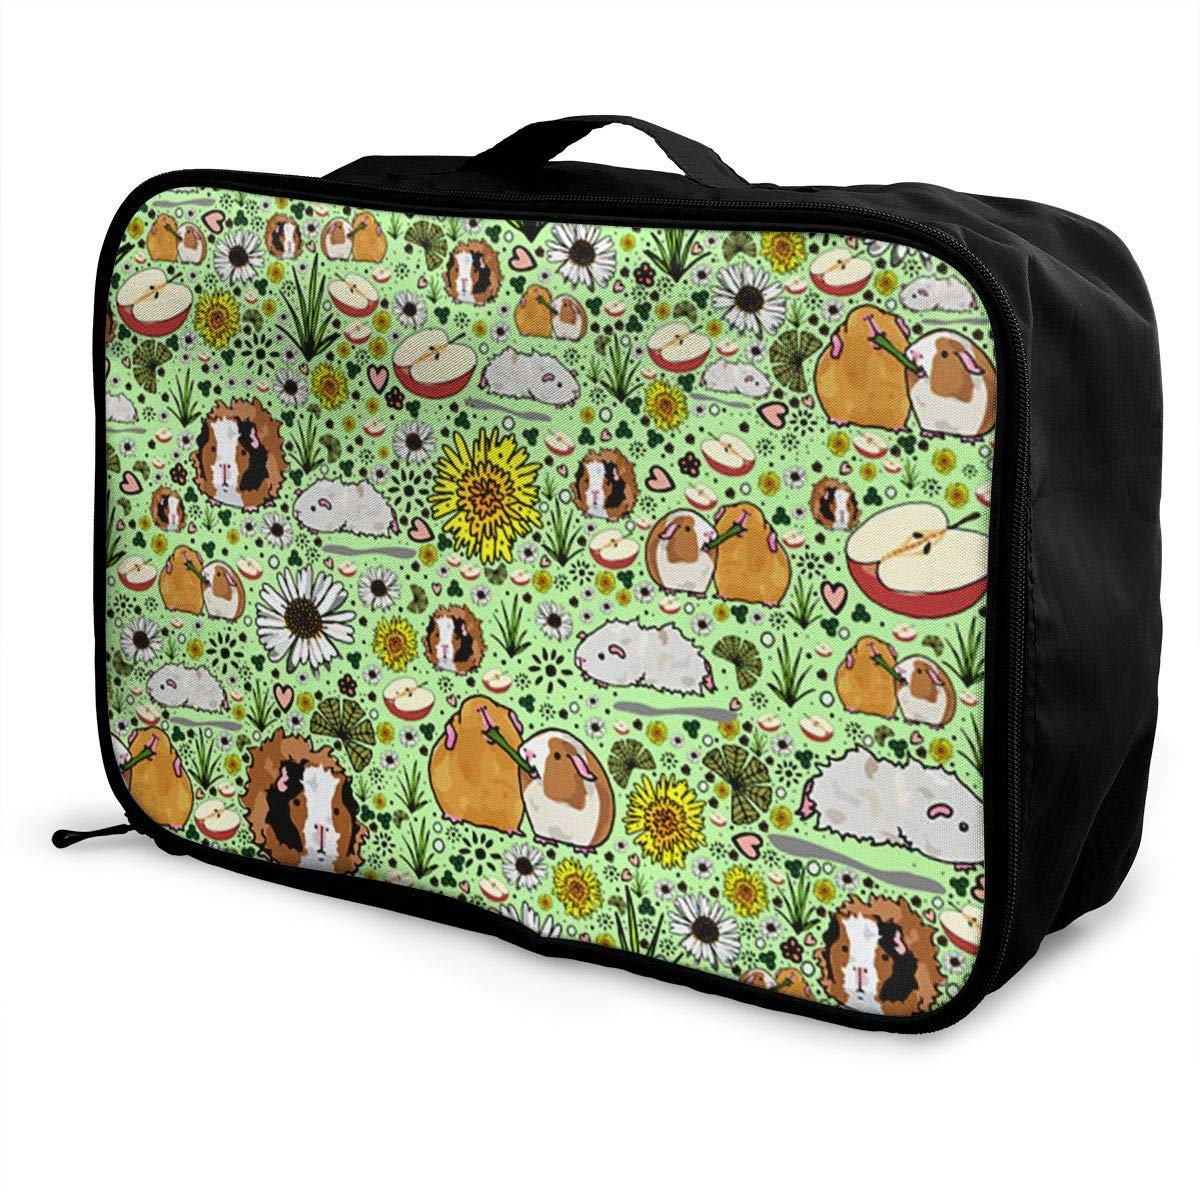 Portable Luggage Duffel Bag Guinea Pigs Travel Bags Carry-on in Trolley Handle JTRVW Luggage Bags for Travel